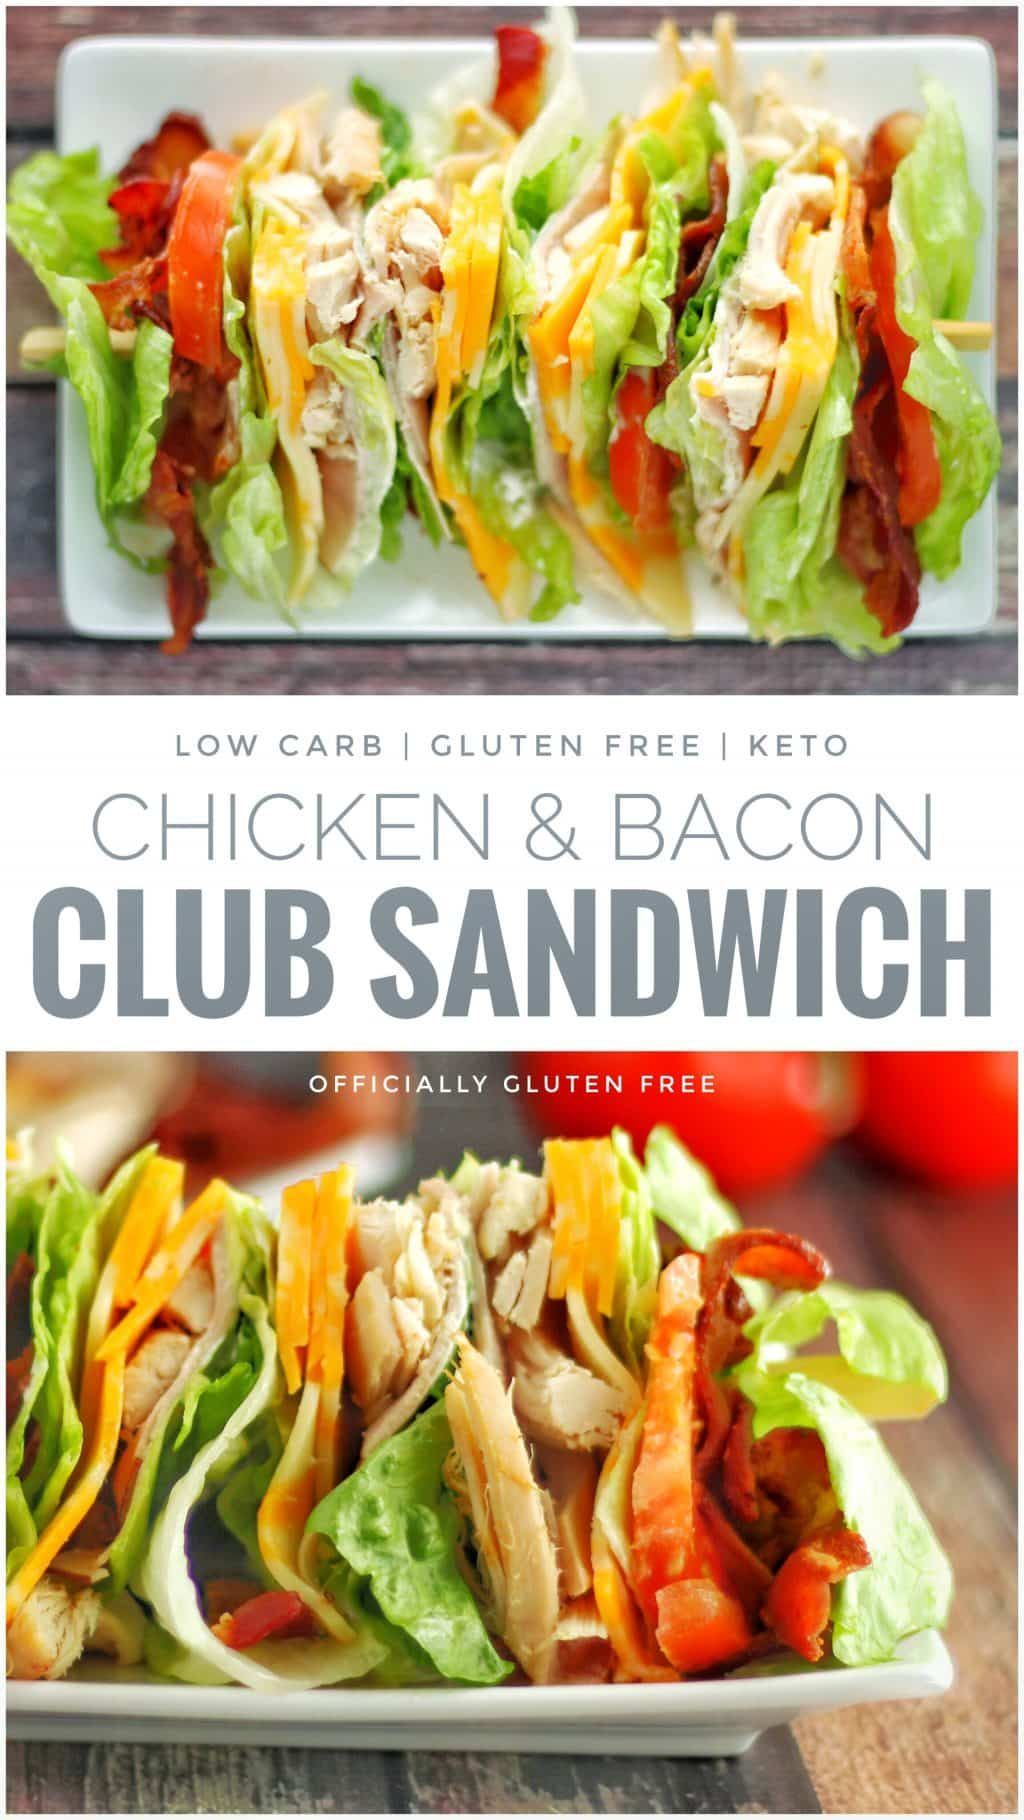 Low Carb Chicken Club Sandwich | Keto Clubhouse Lettuce Wrap